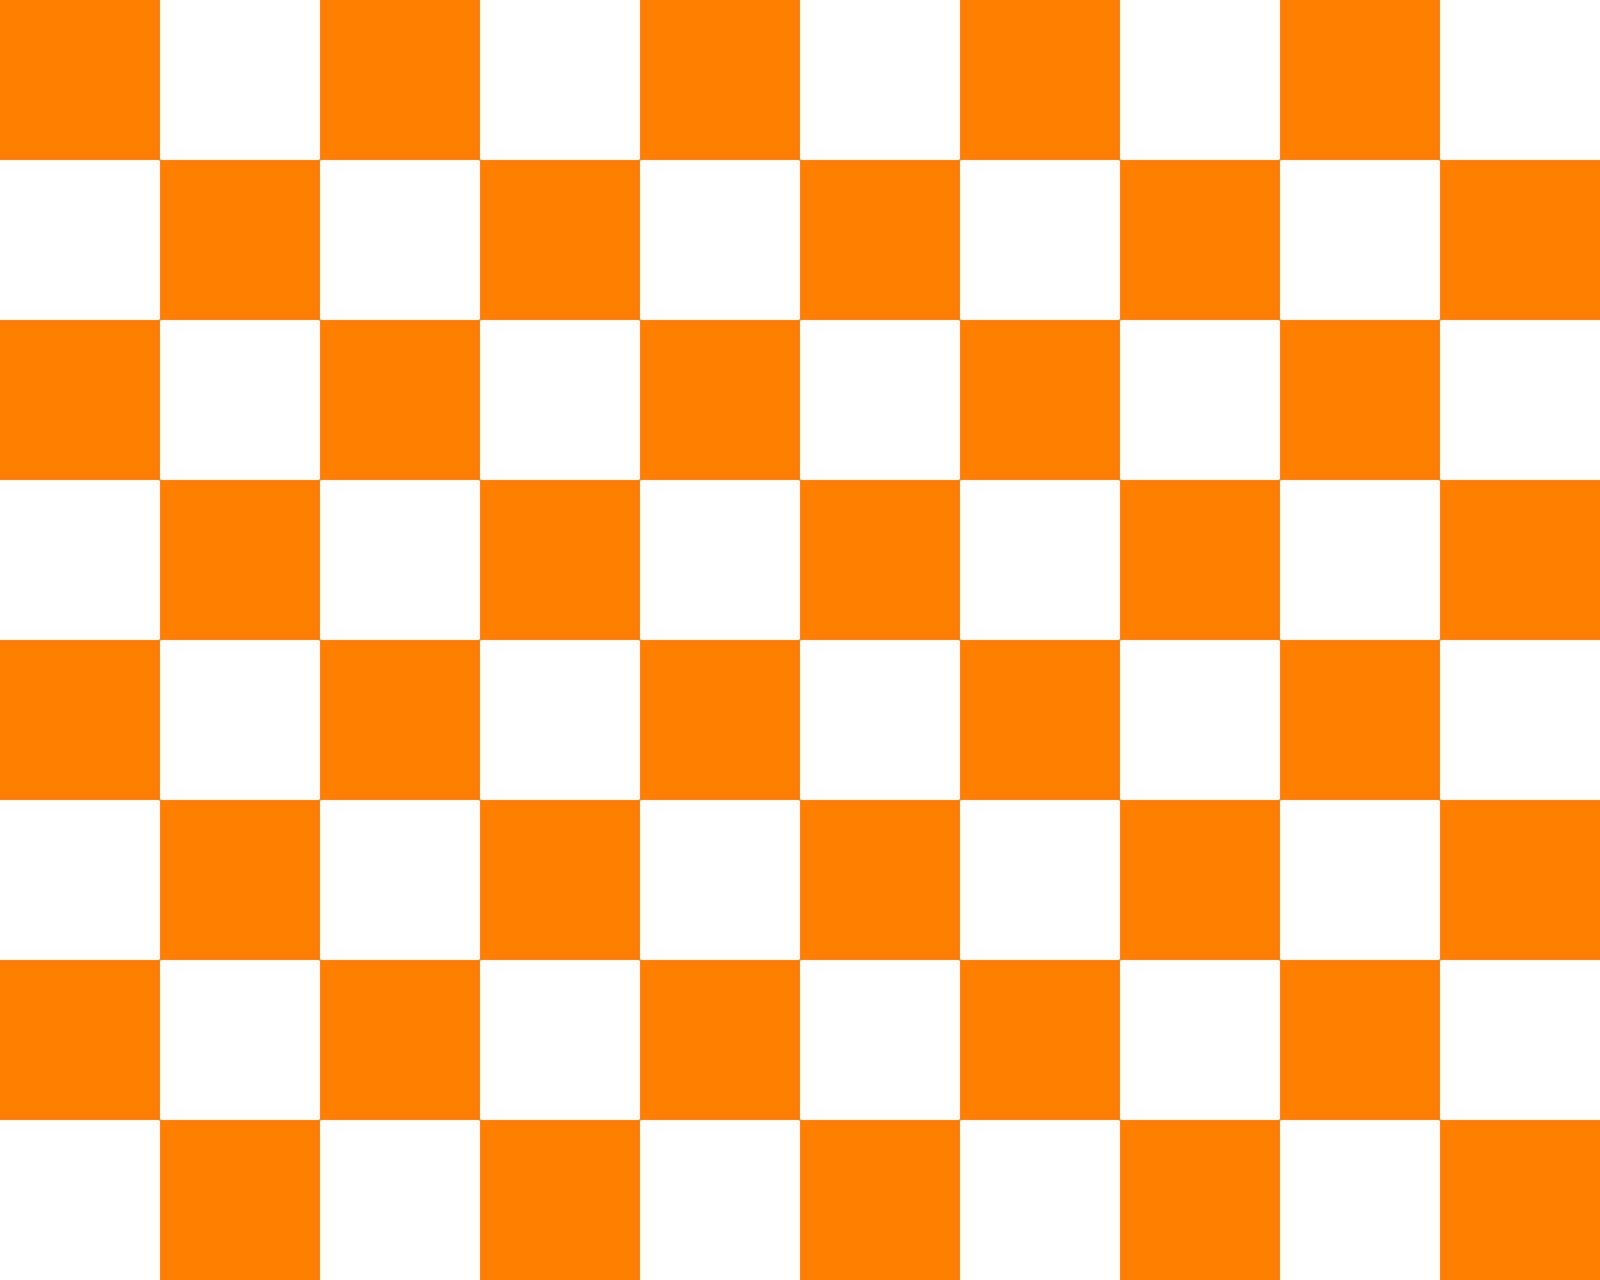 Checkered Wallpaper Orange Checkered Wallpaper 1600x1280